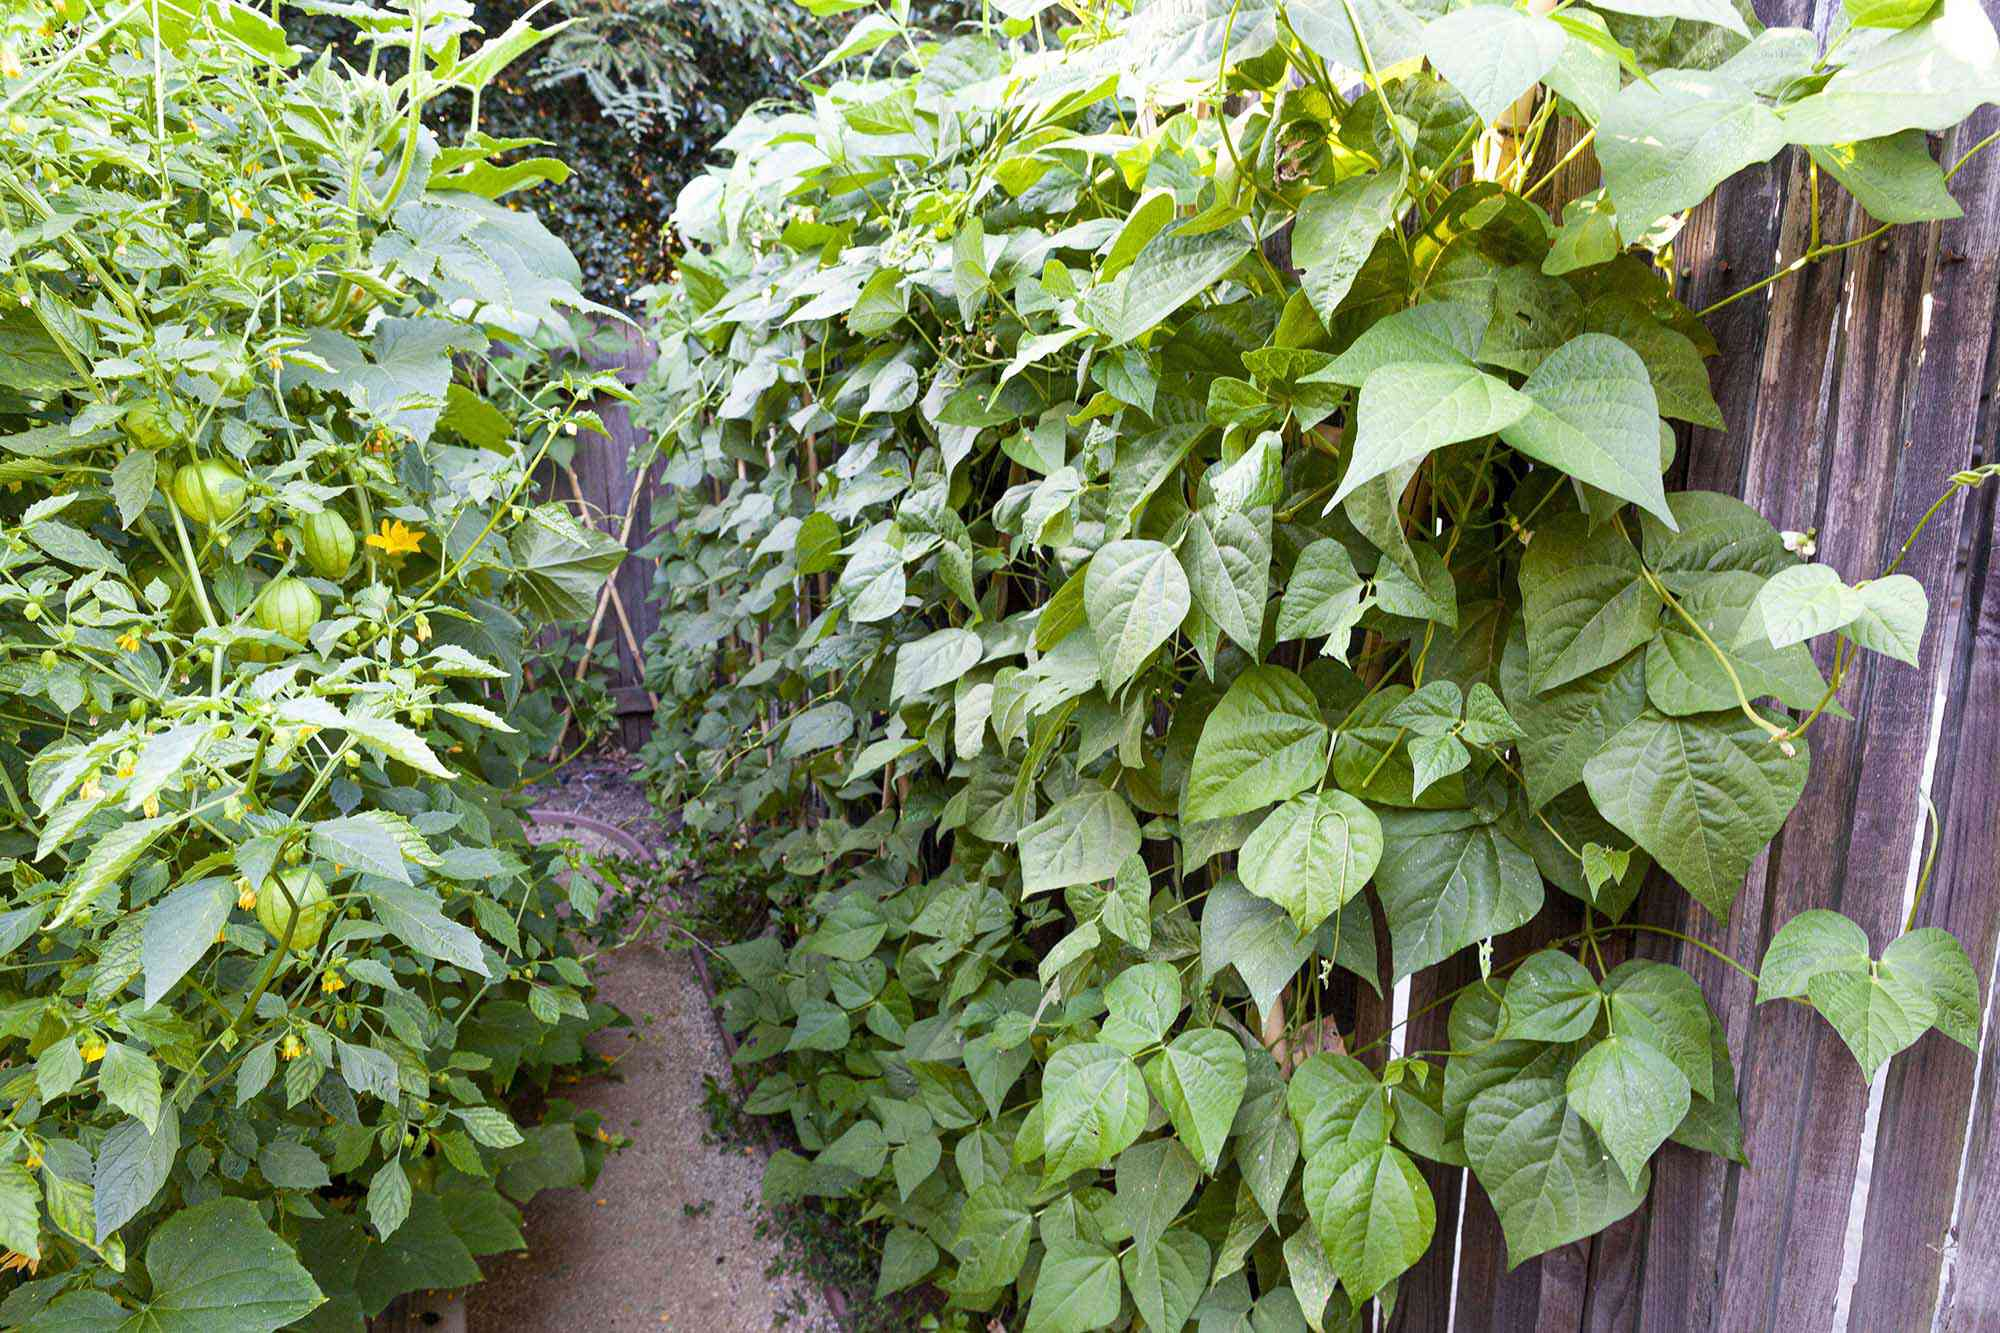 A garden of green beans ready to harvest